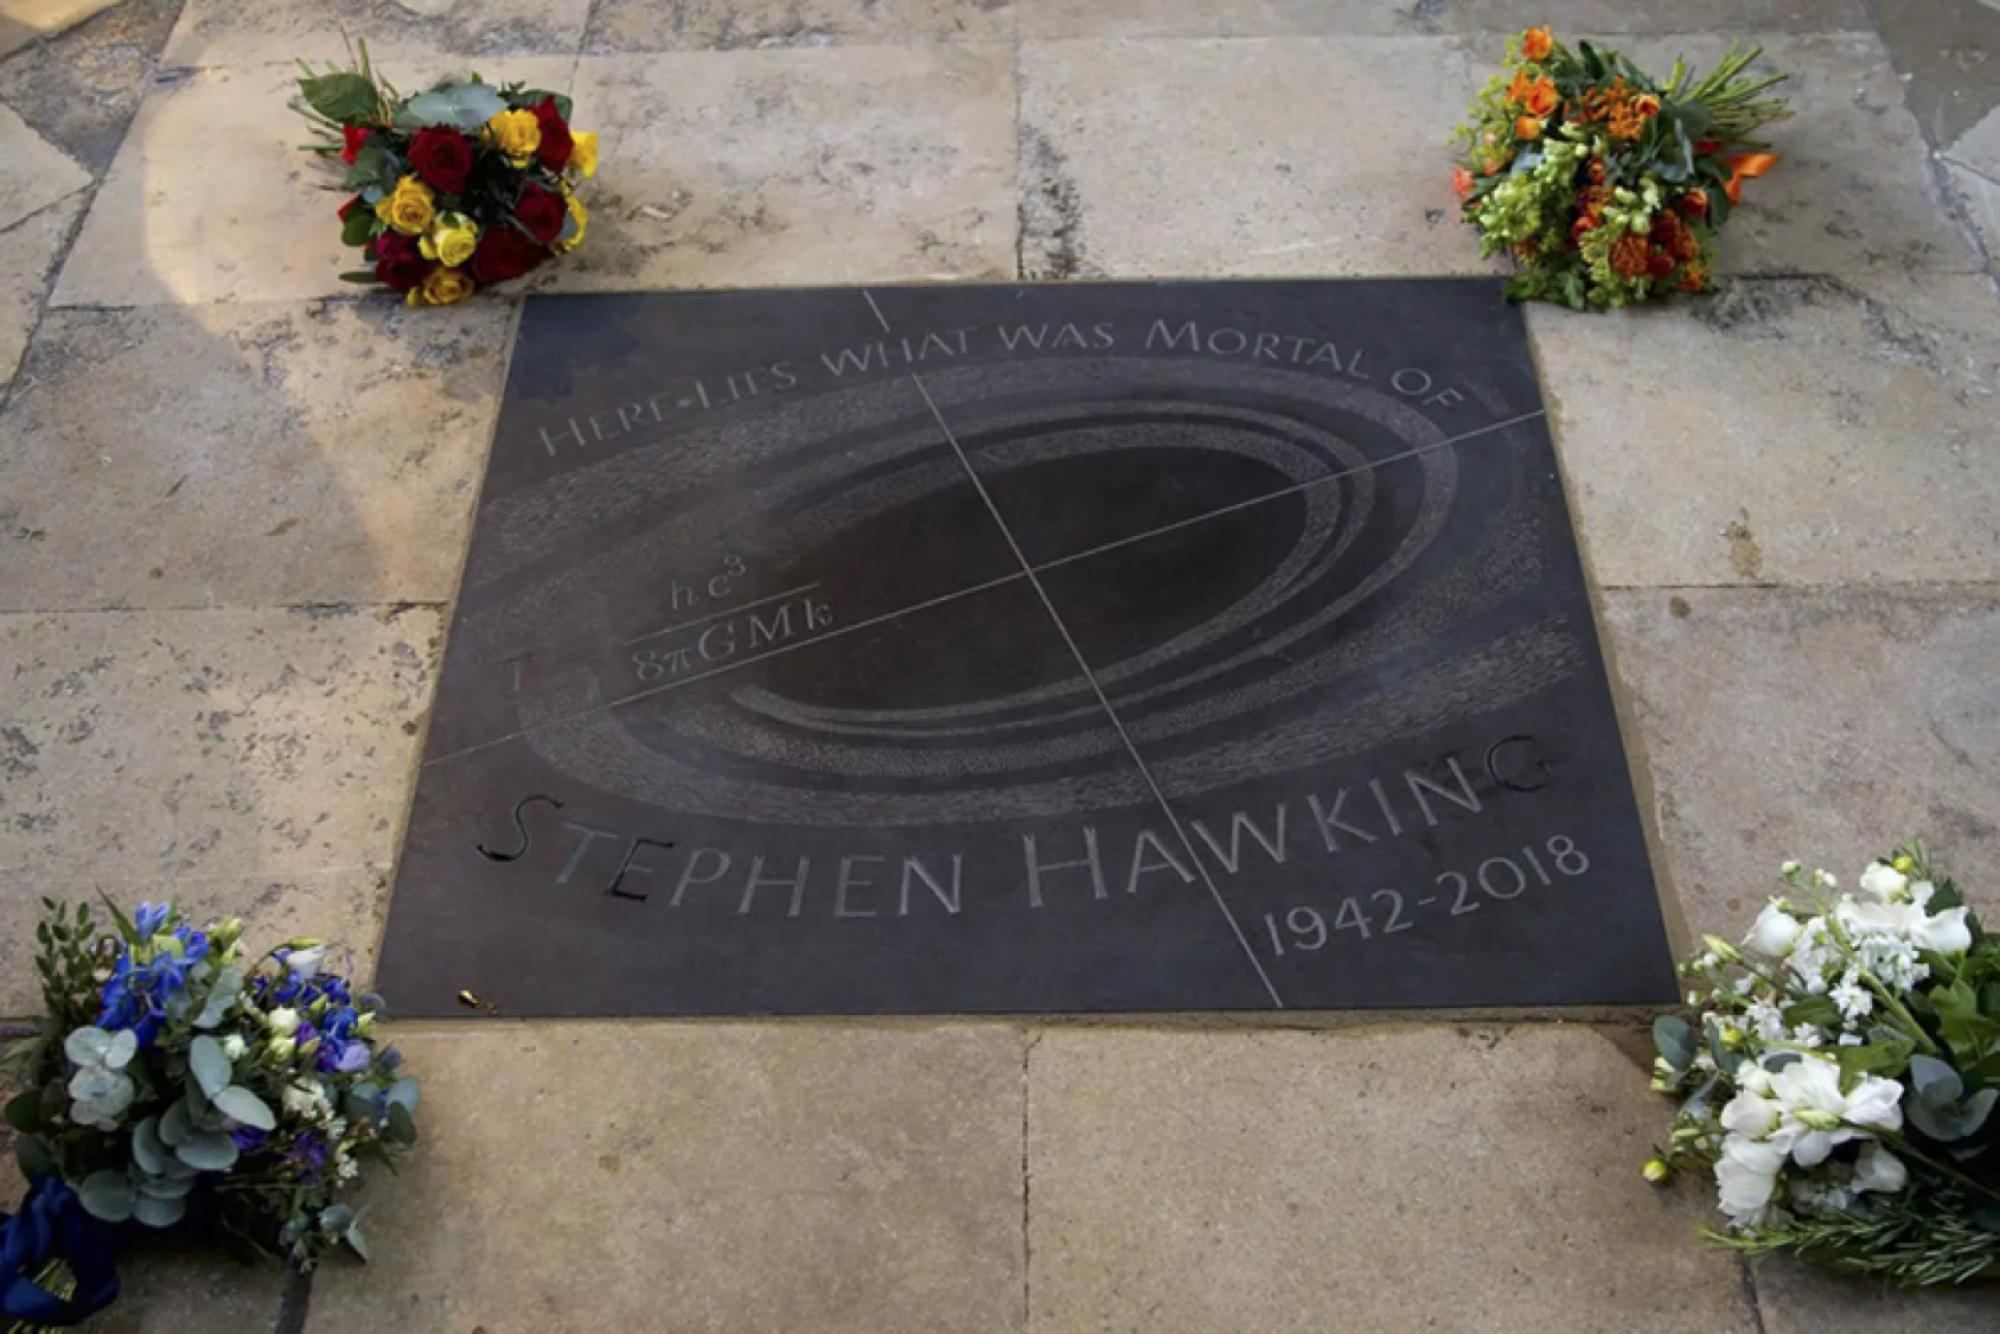 "Hawking was interred beneath a stone with the inscription, ""Here lies what was mortal of Stephen Hawking,"" which is an English translation of the Latin words on the nearby grave of Sir Isaac Newton. The stone is also inscribed with one of Hawking's equati"